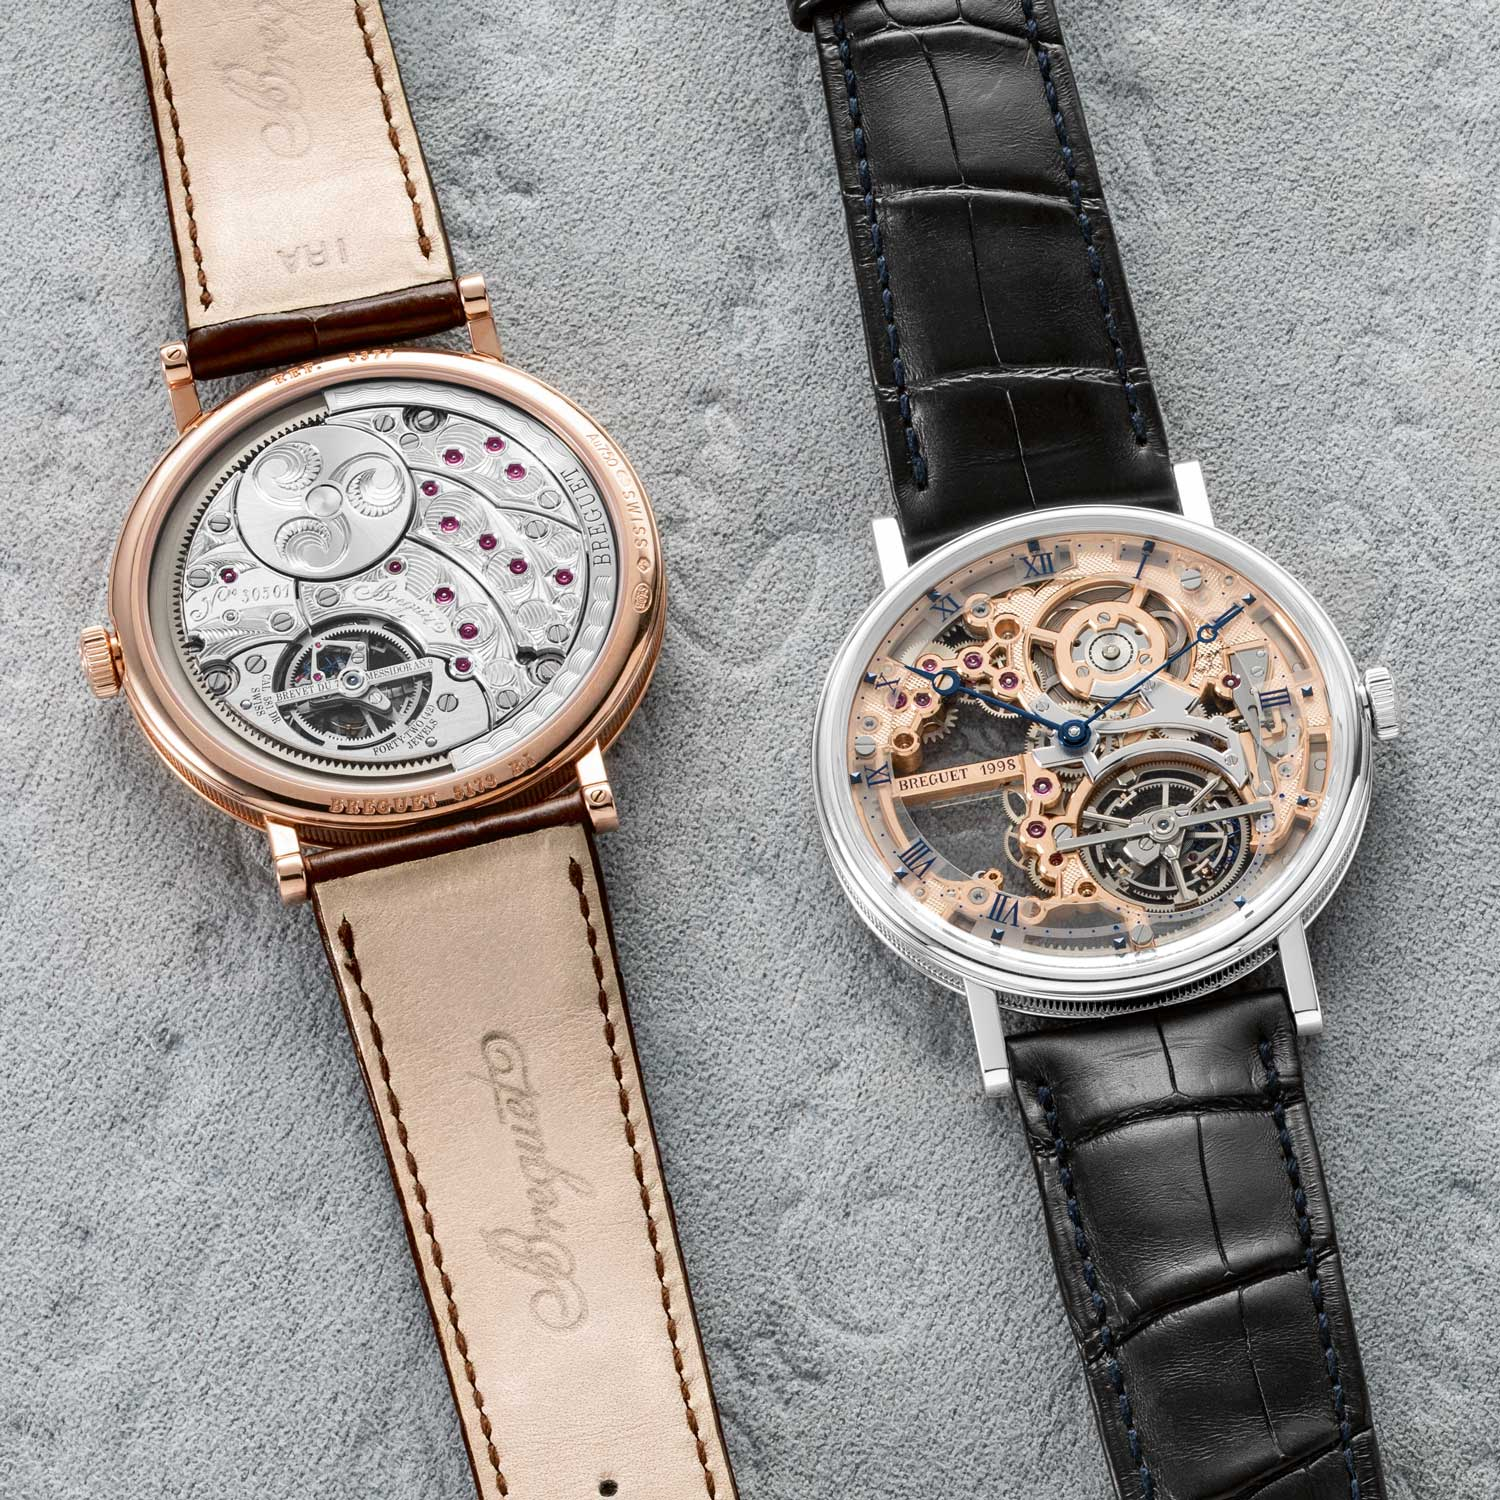 (From left) The ref. 5377 has classically handsome Breguet features, from the guillochéd dial to the gold bead indicators and blued Breguet hands on display. The ref. 5395 features a full gold movement that has been thoroughly skeletonised by Breguet, removing half of all its material to create a modern, lean and powerful design.